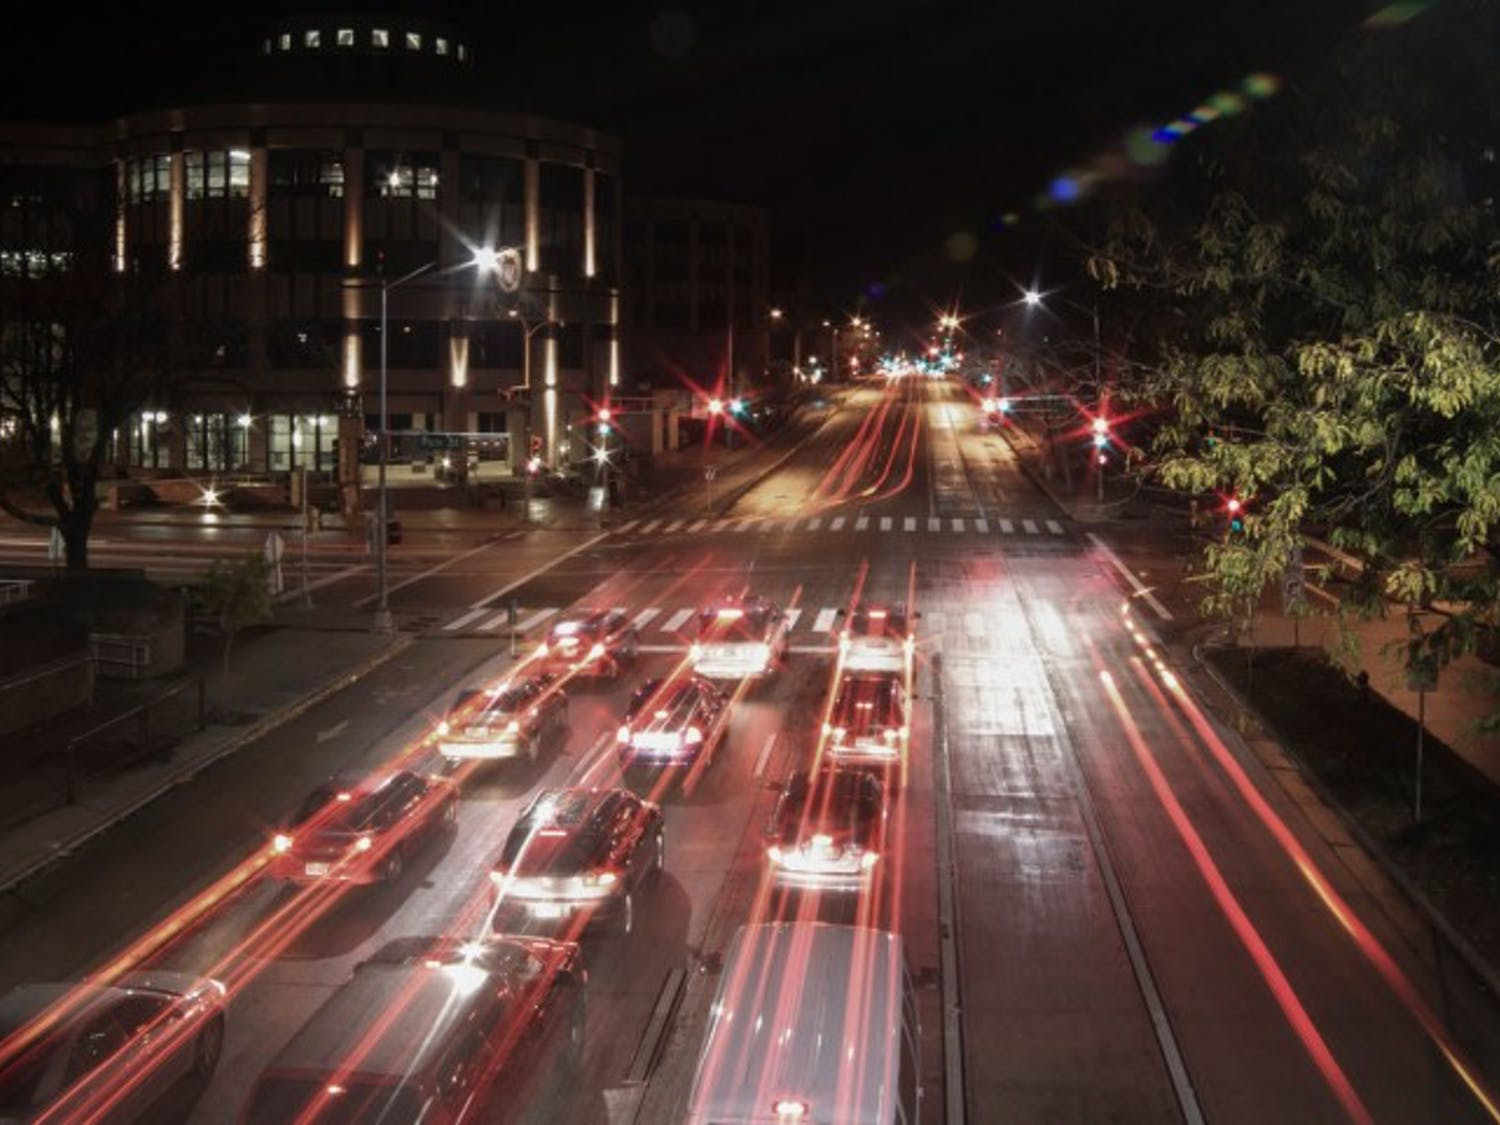 Cars headed west down University Avenue at the intersection of Park Street and University Avenue under long exposure, taken from the pedestrian footbridge.